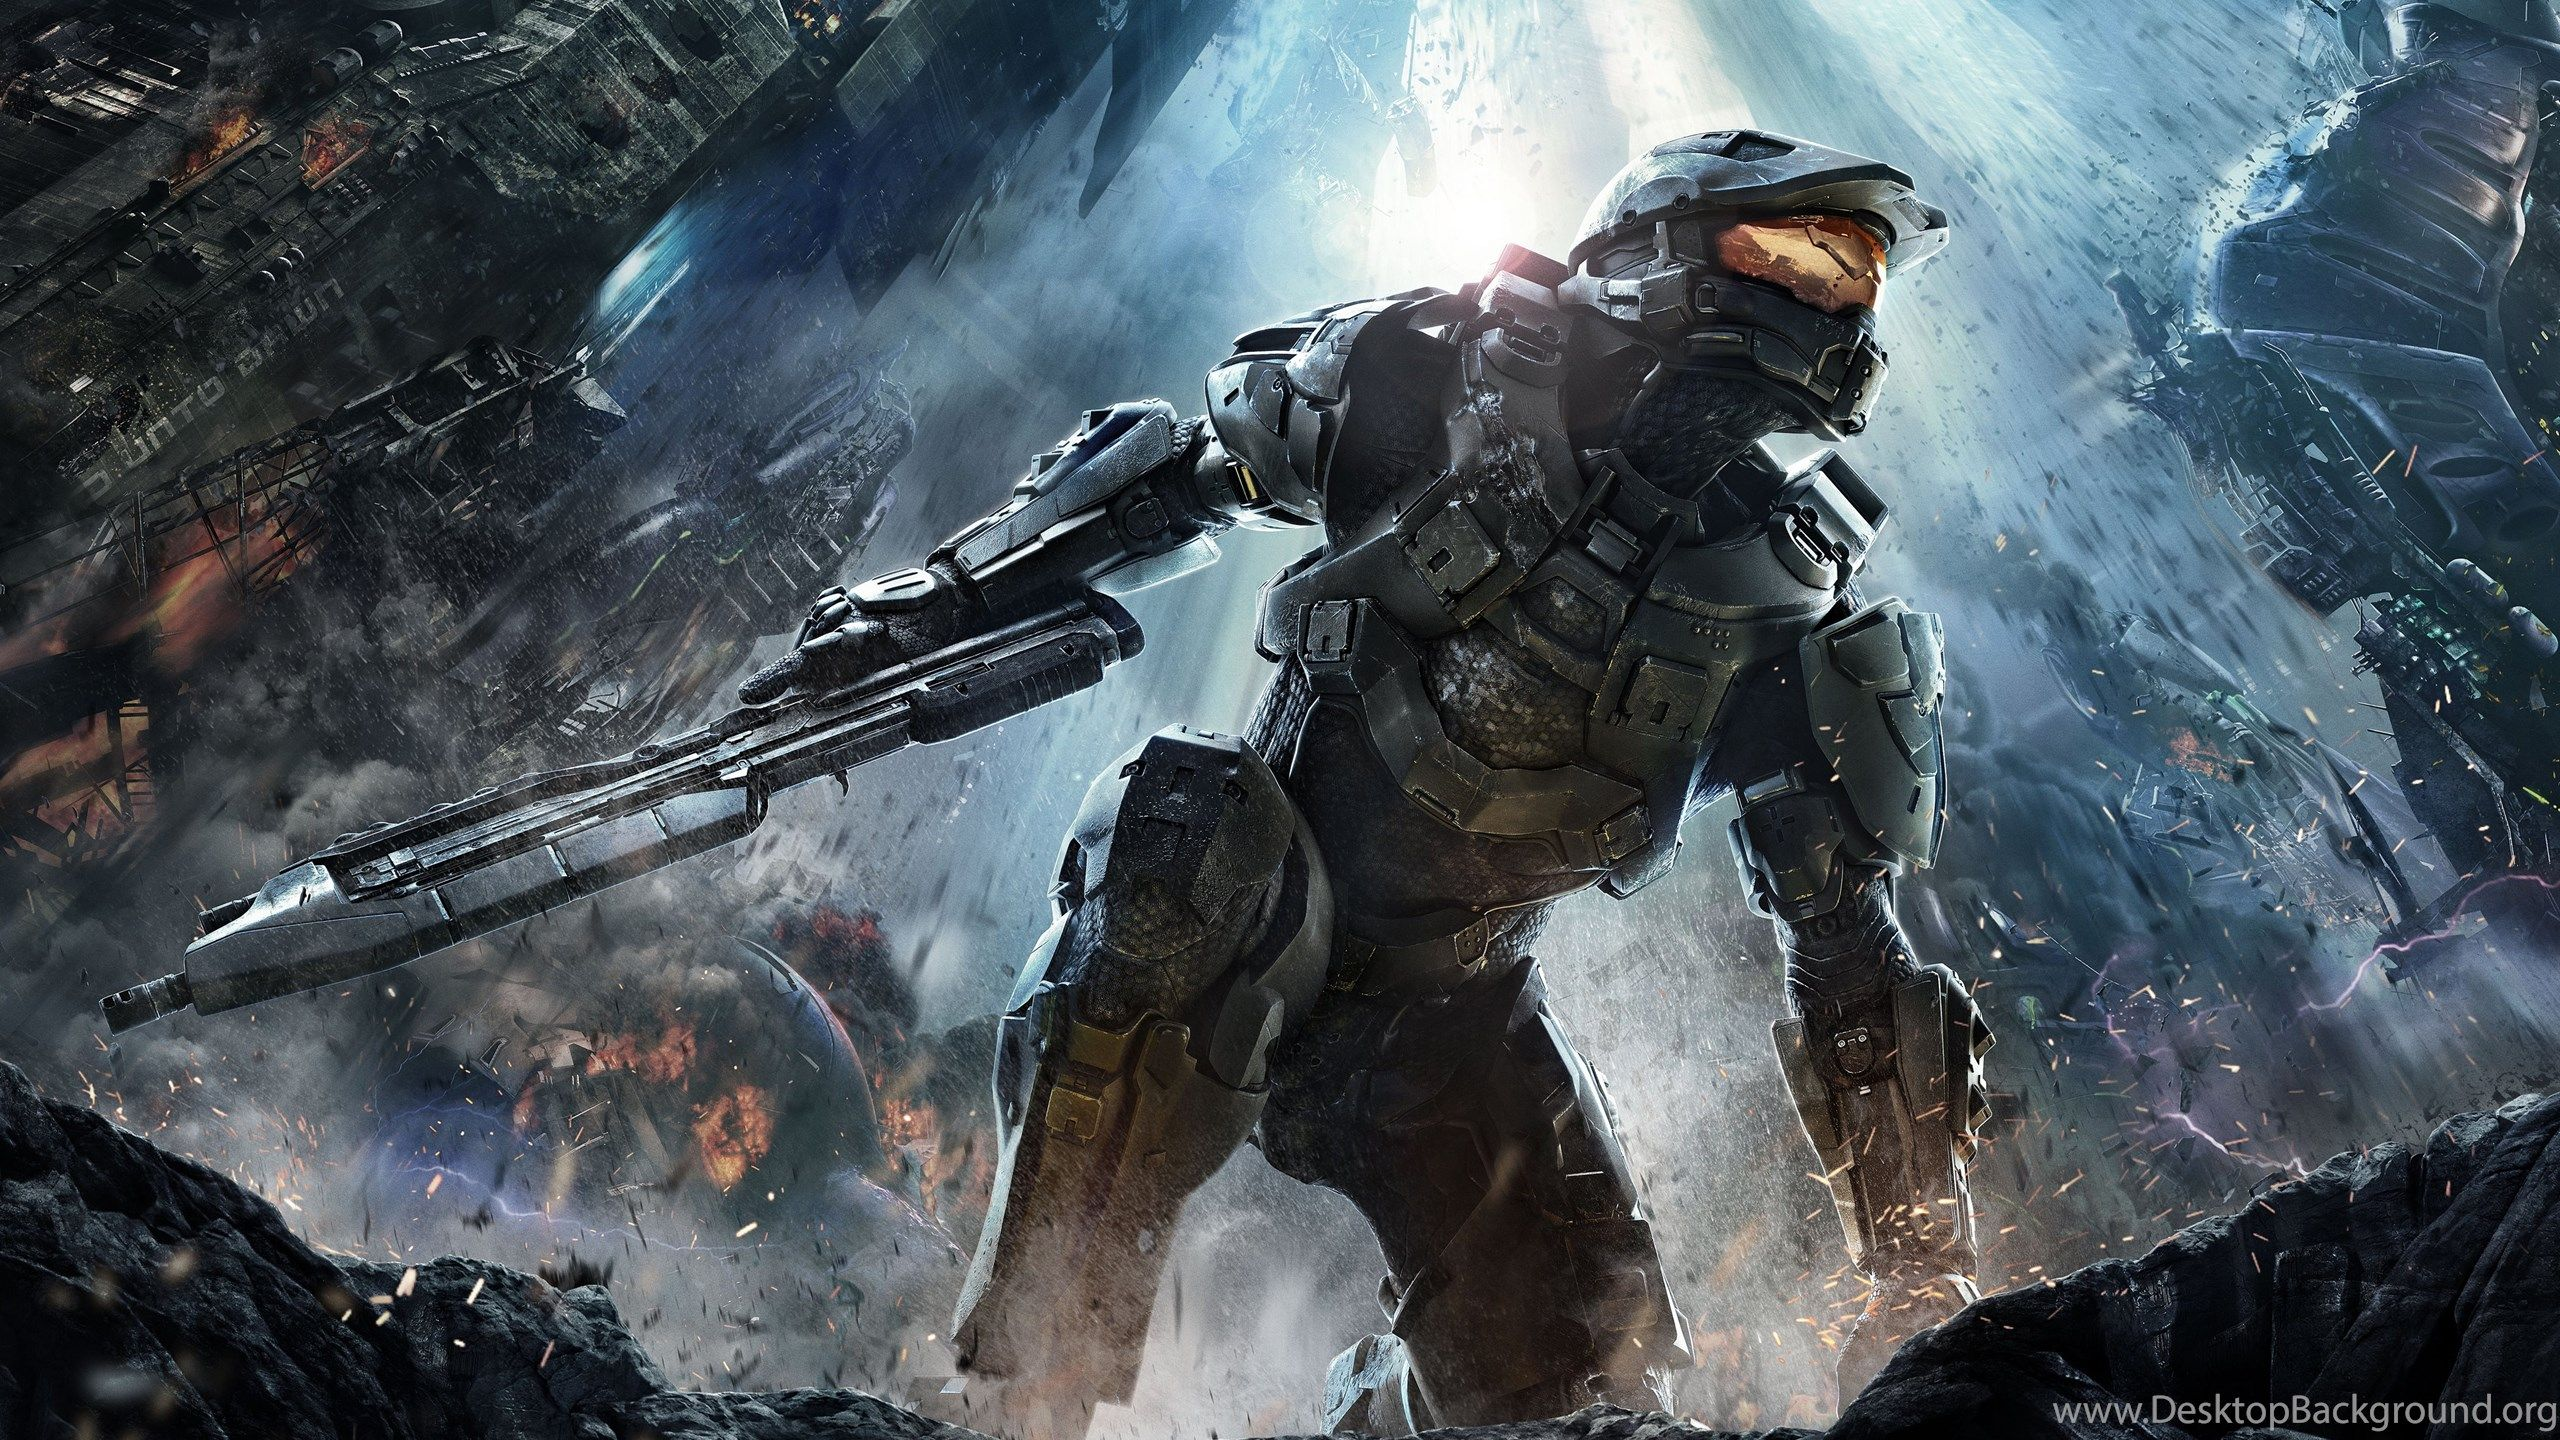 Halo Wallpaper Desktop Background   Data-src /full/866572 - Fondos De Pantalla Hd Para Pc Gamer , HD Wallpaper & Backgrounds